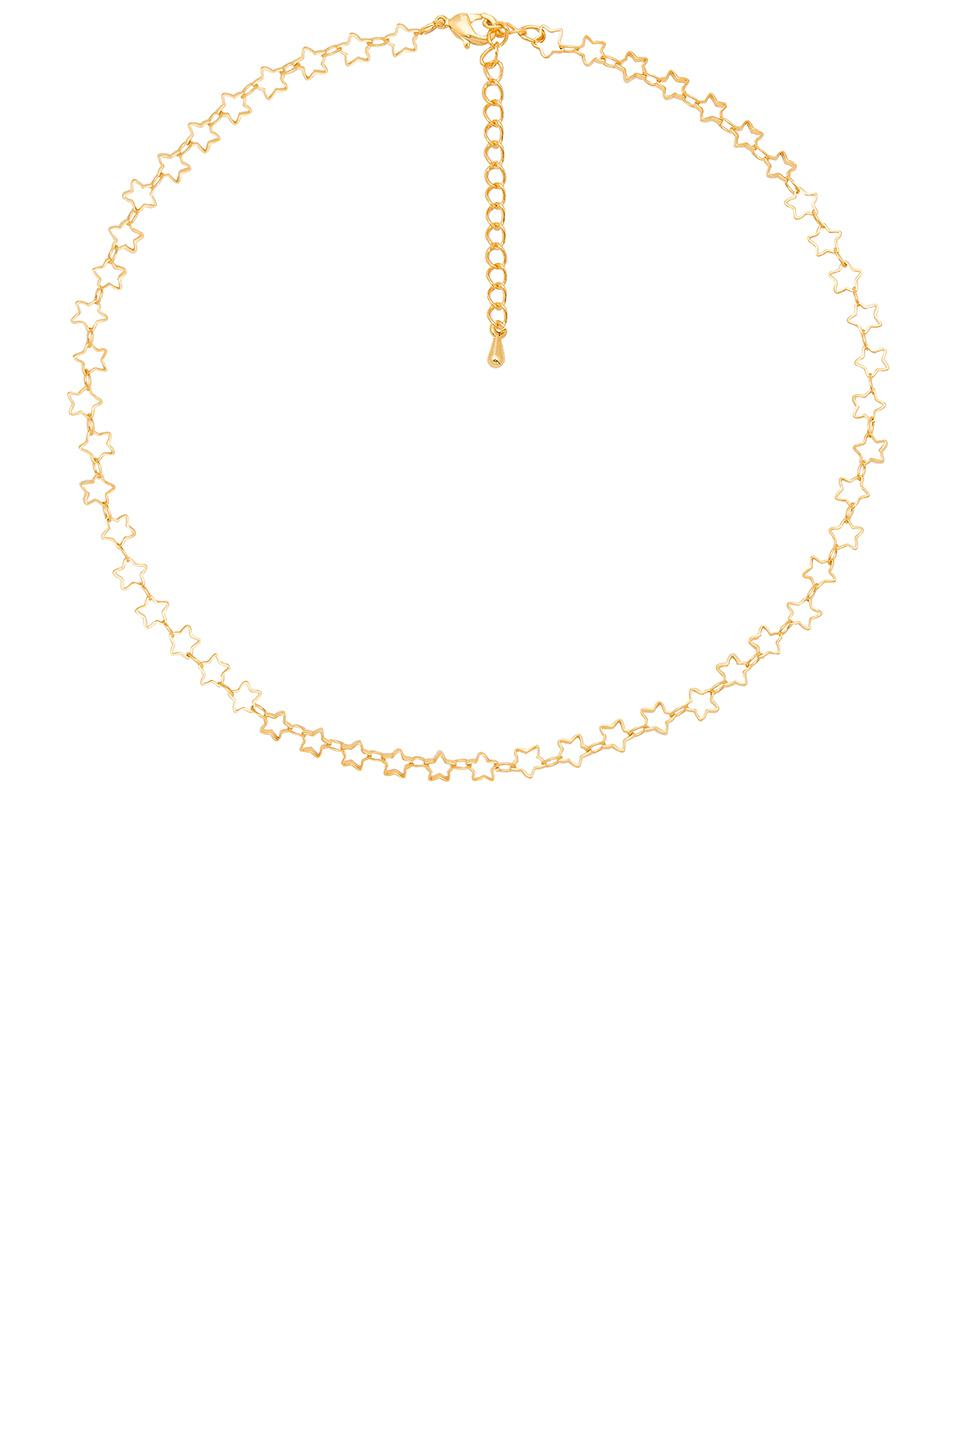 Five and Two Chain Choker Necklace in Metallic Gold ngkZNl3